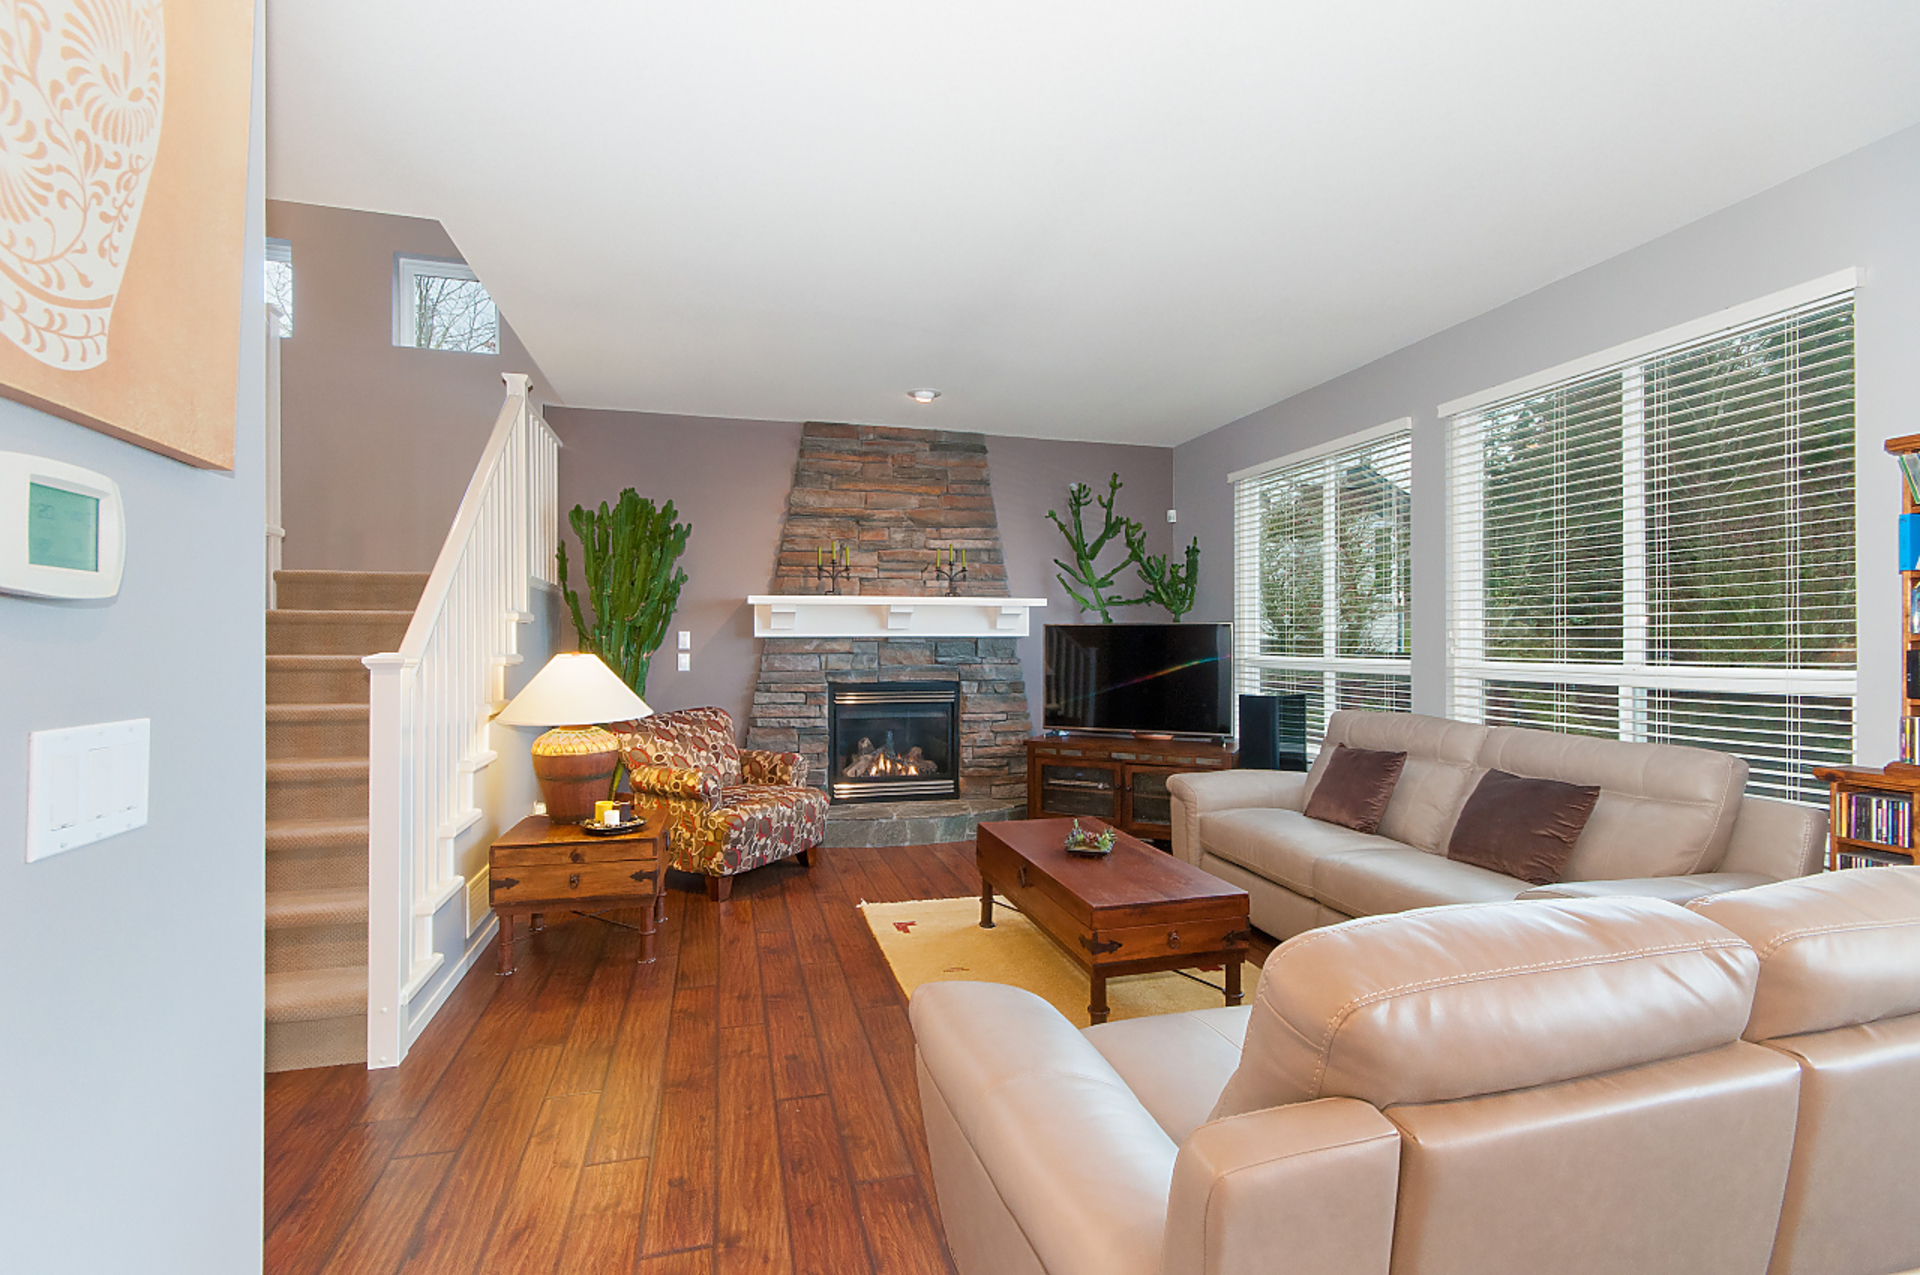 006 at 120 Greenleaf Court, Heritage Woods PM, Port Moody